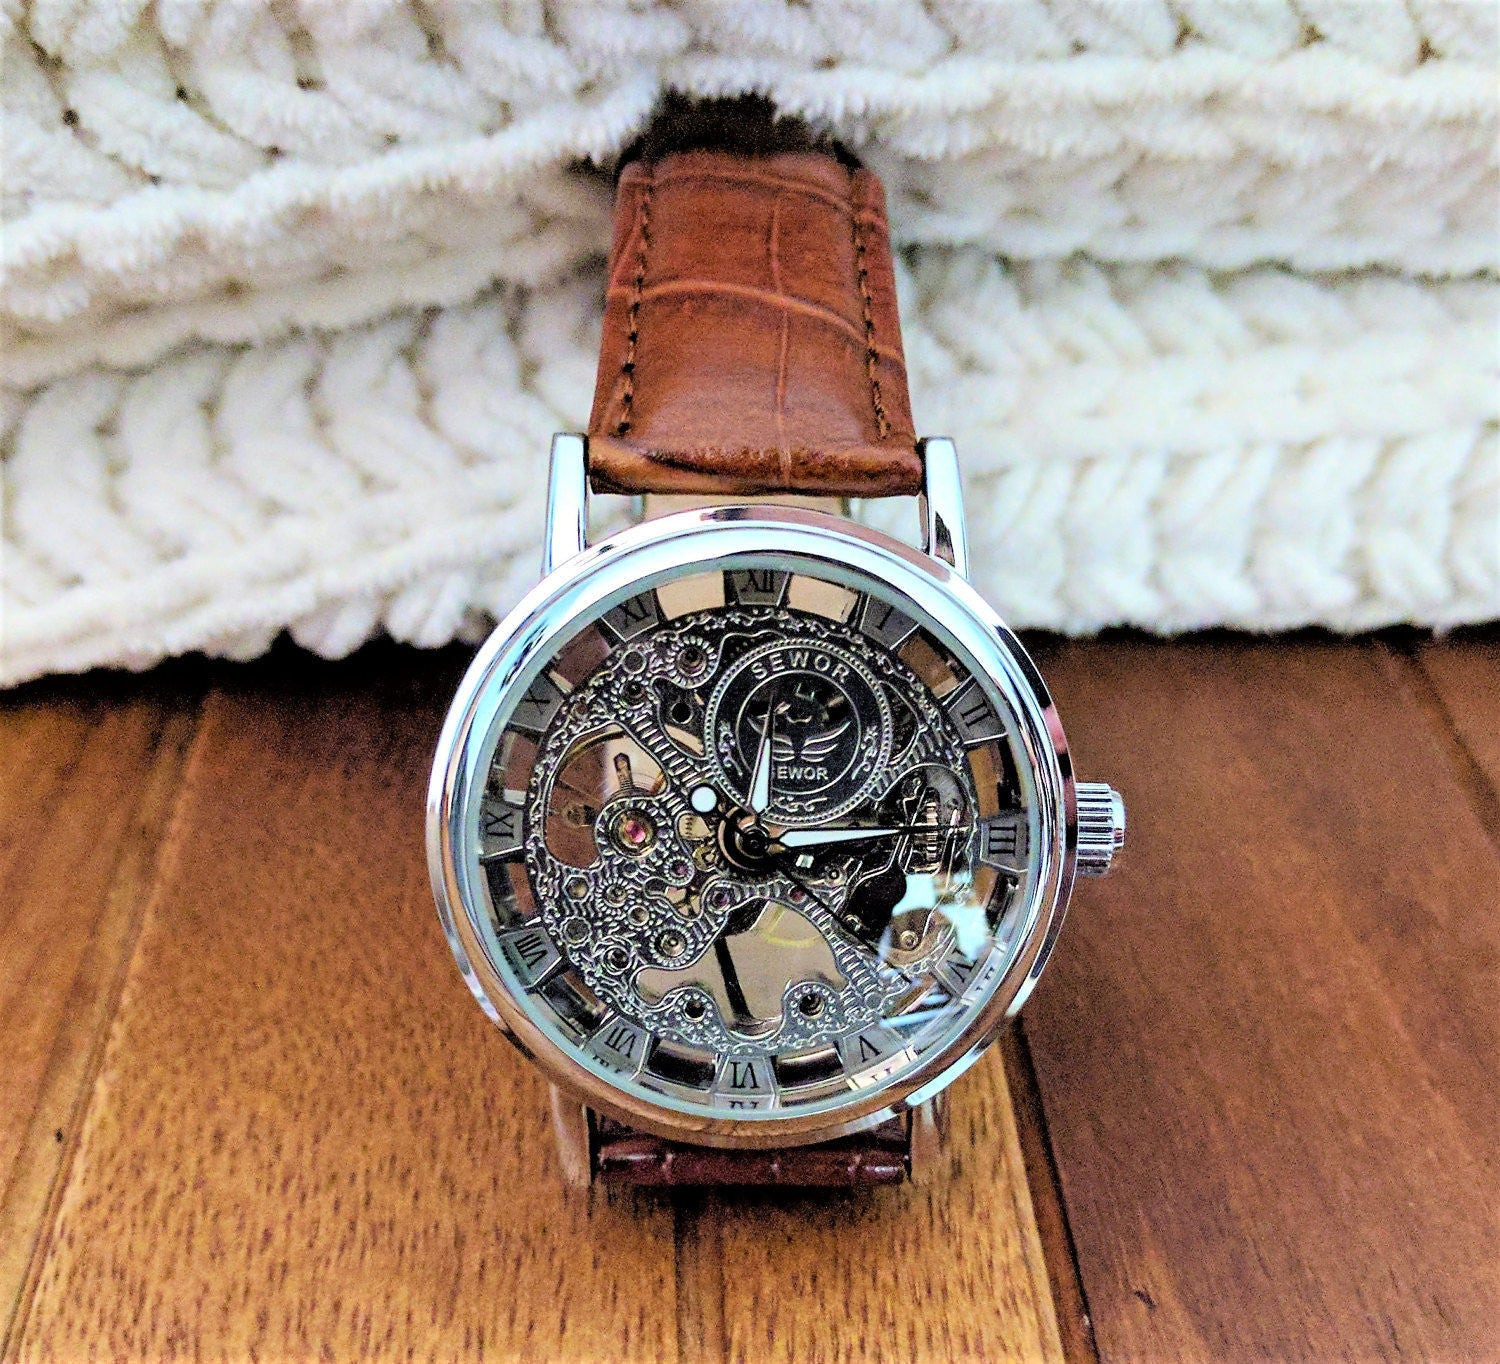 engraved watch personalized watch for men engraved wristwatch skeleton watch automatic watch groomsmen watches man leather wrist watch boyfriend gift